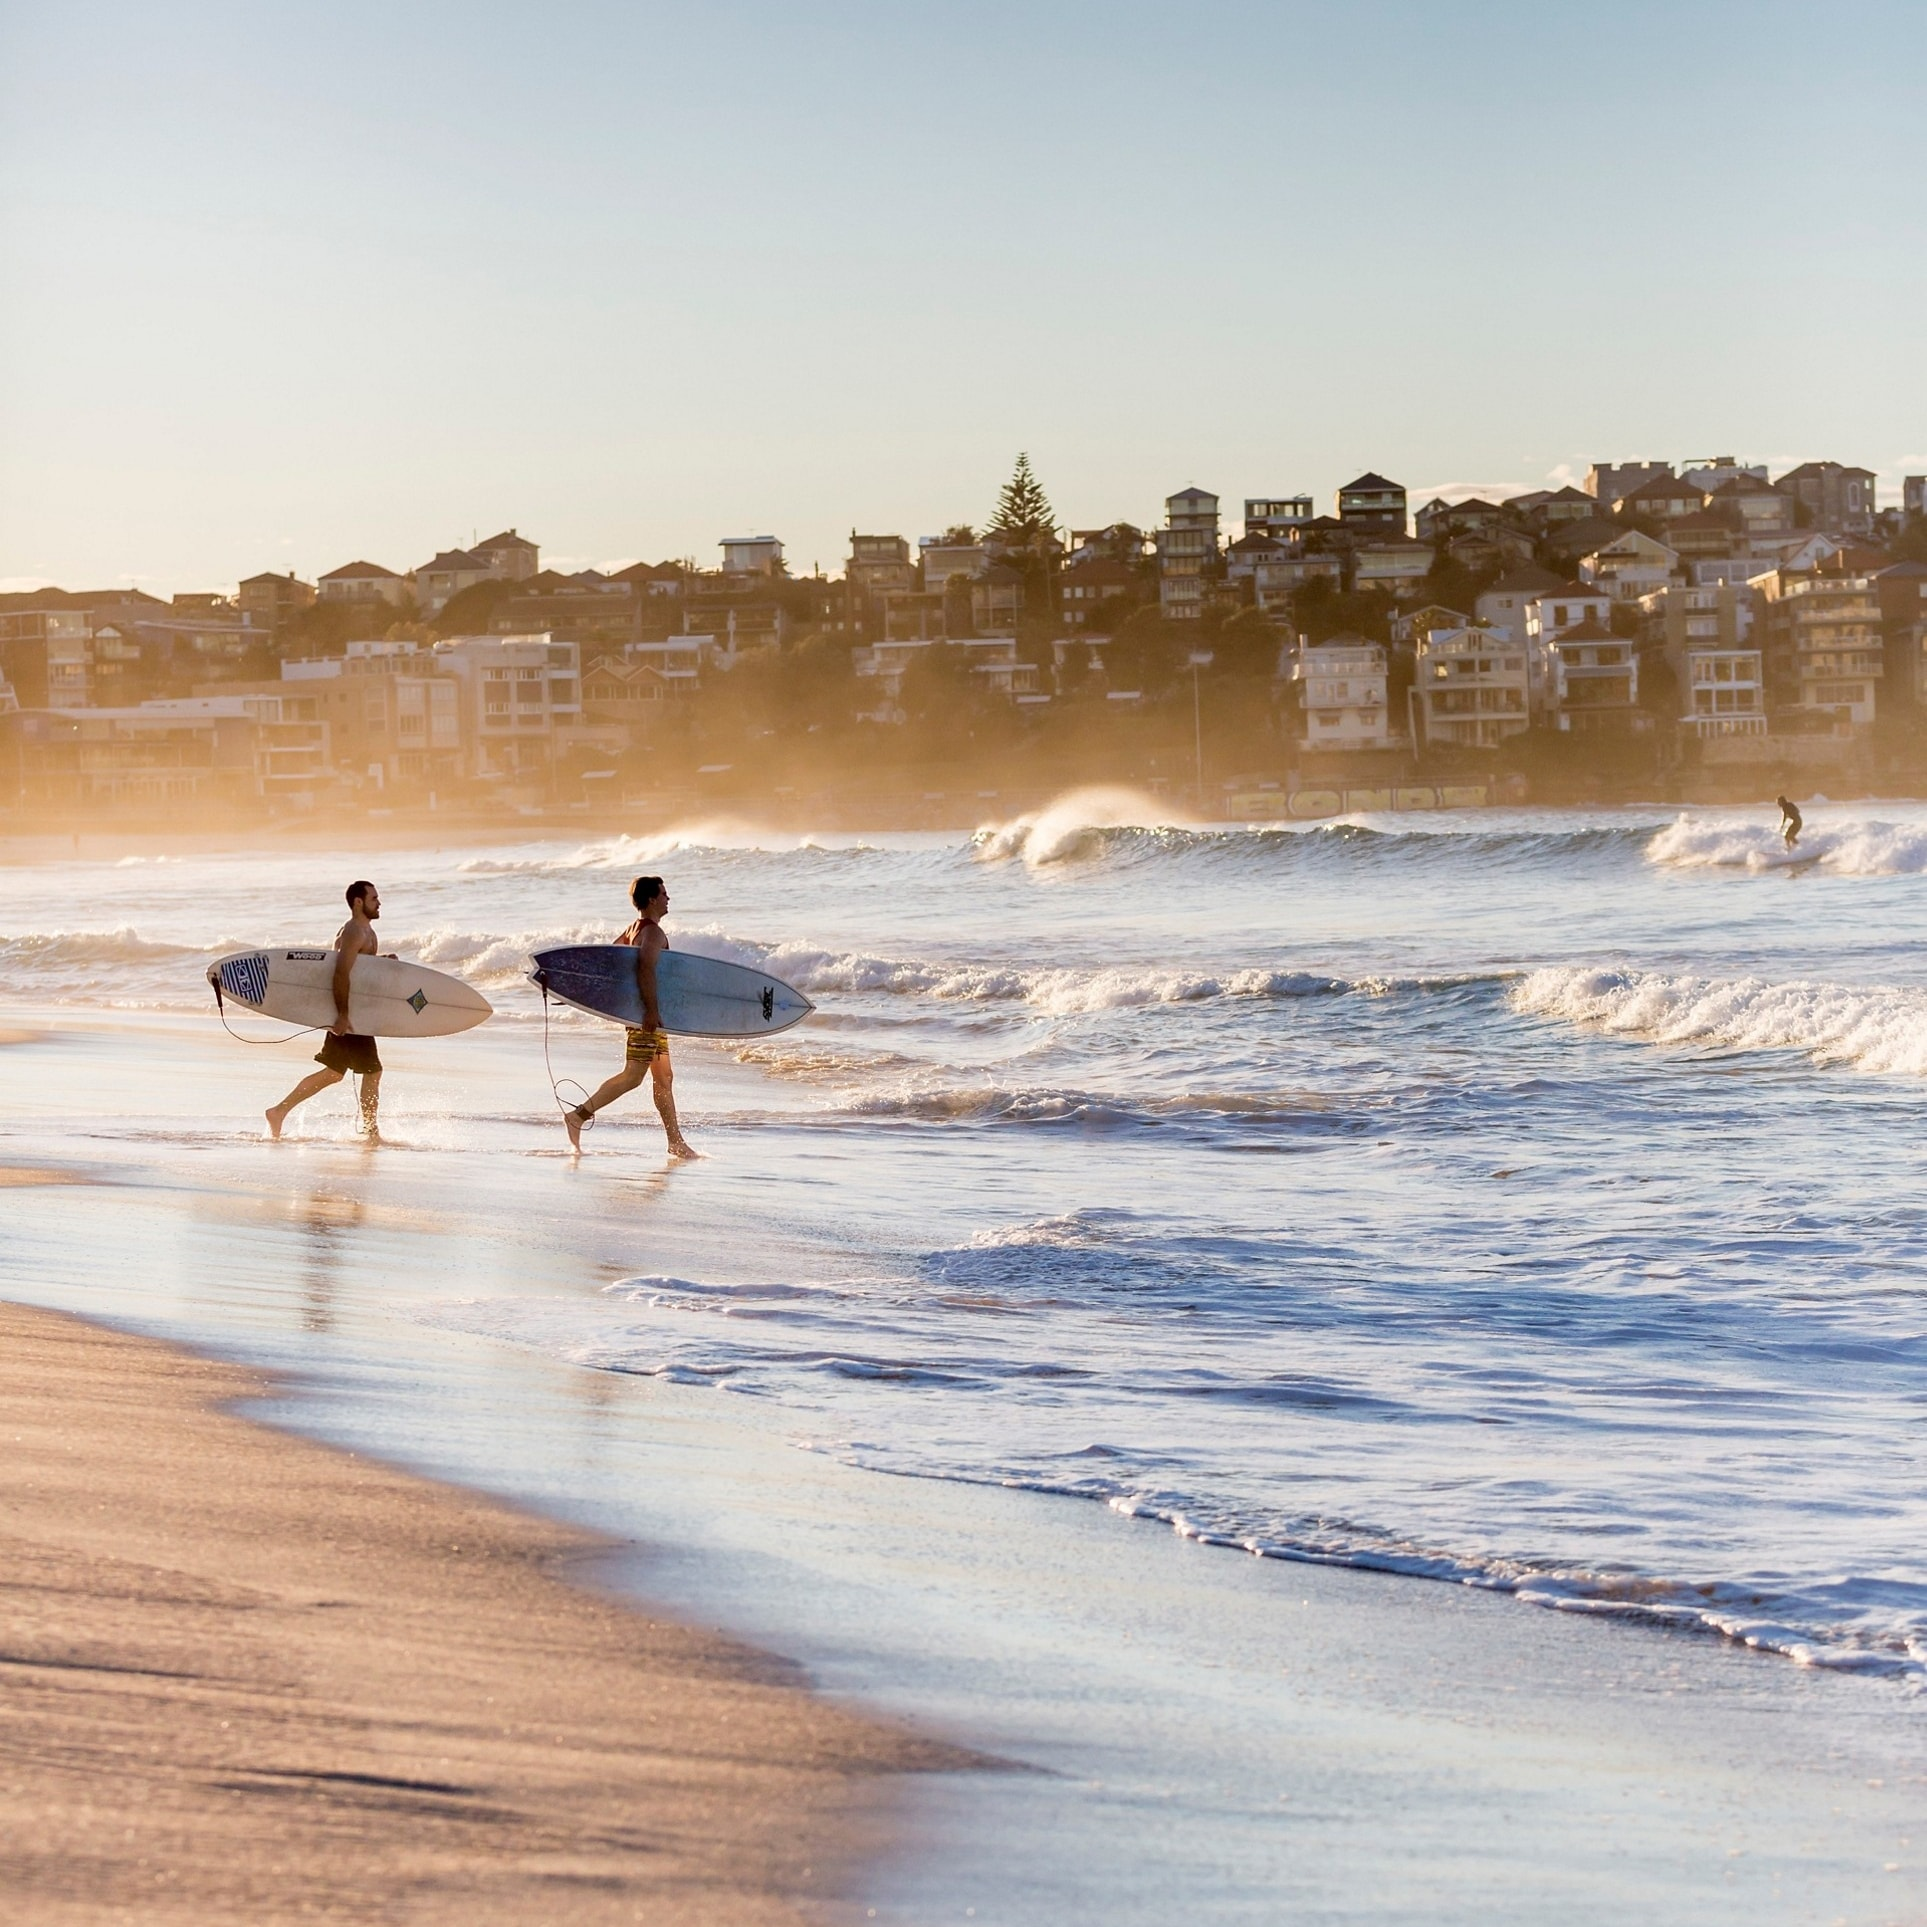 Surfers running into the ocean at Bondi Beach © Daniel Boud